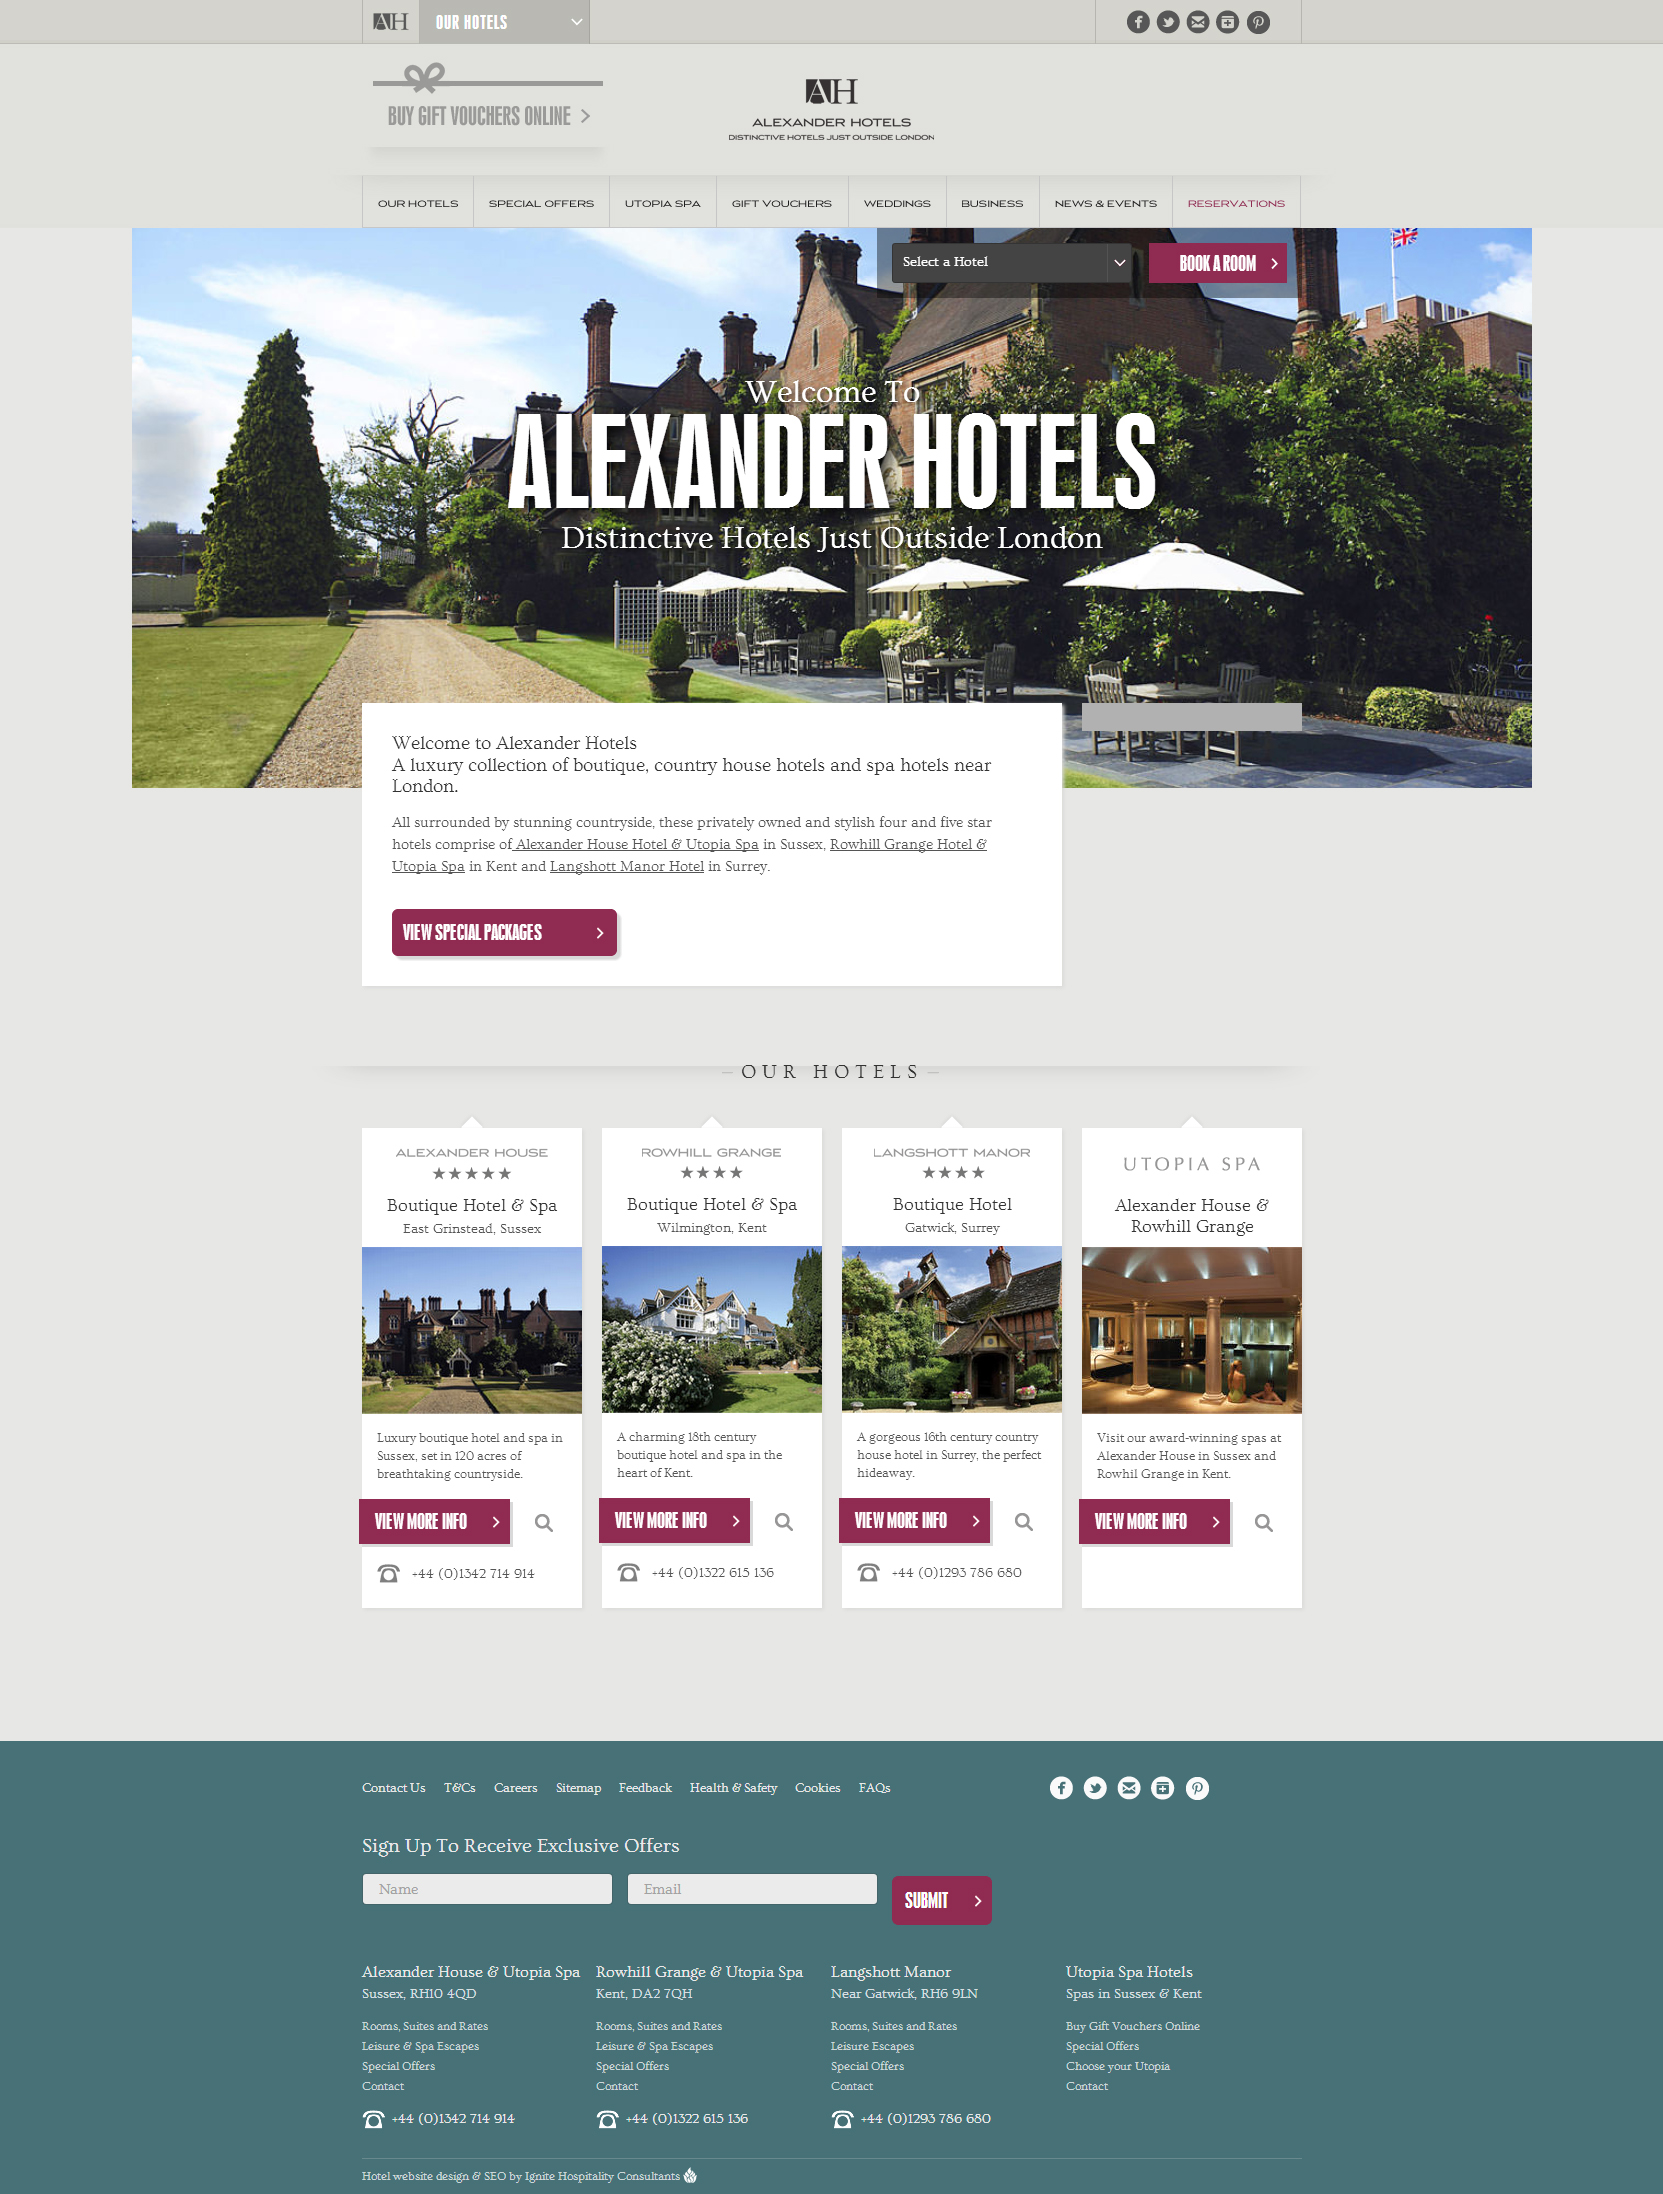 Website Inspiration - Alexander Hotels